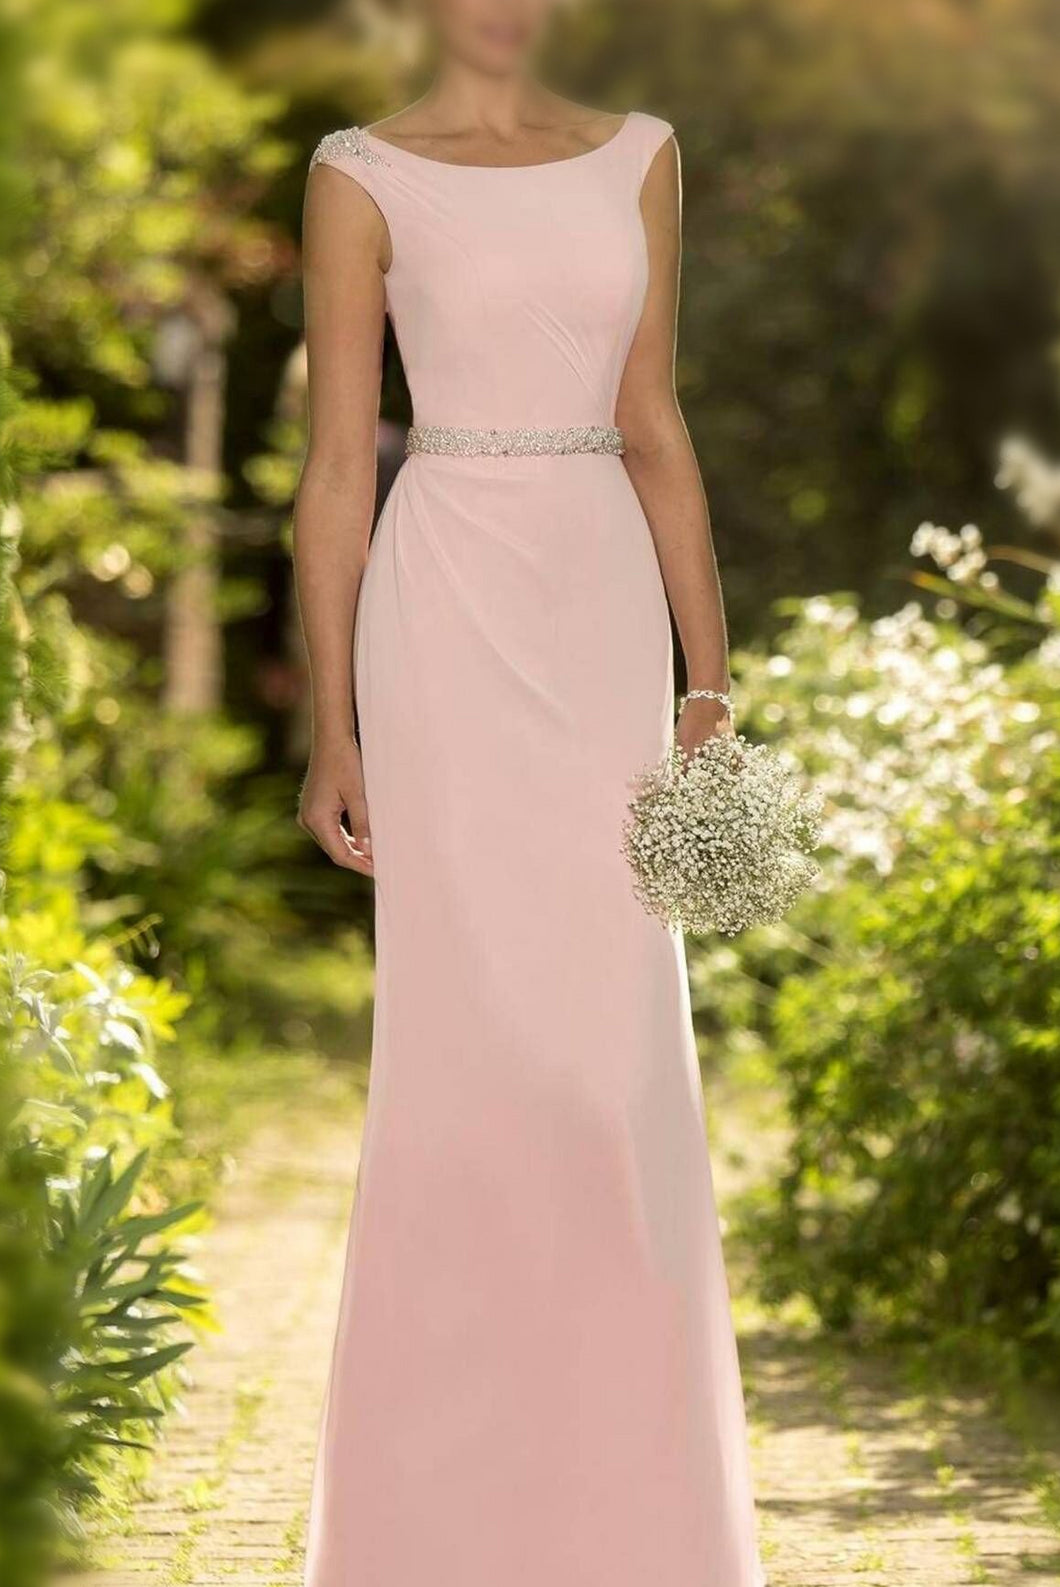 Sheath/Column Sleeveless Beading Wasitband Covered Button Chiffon Bridesmaid Dresses